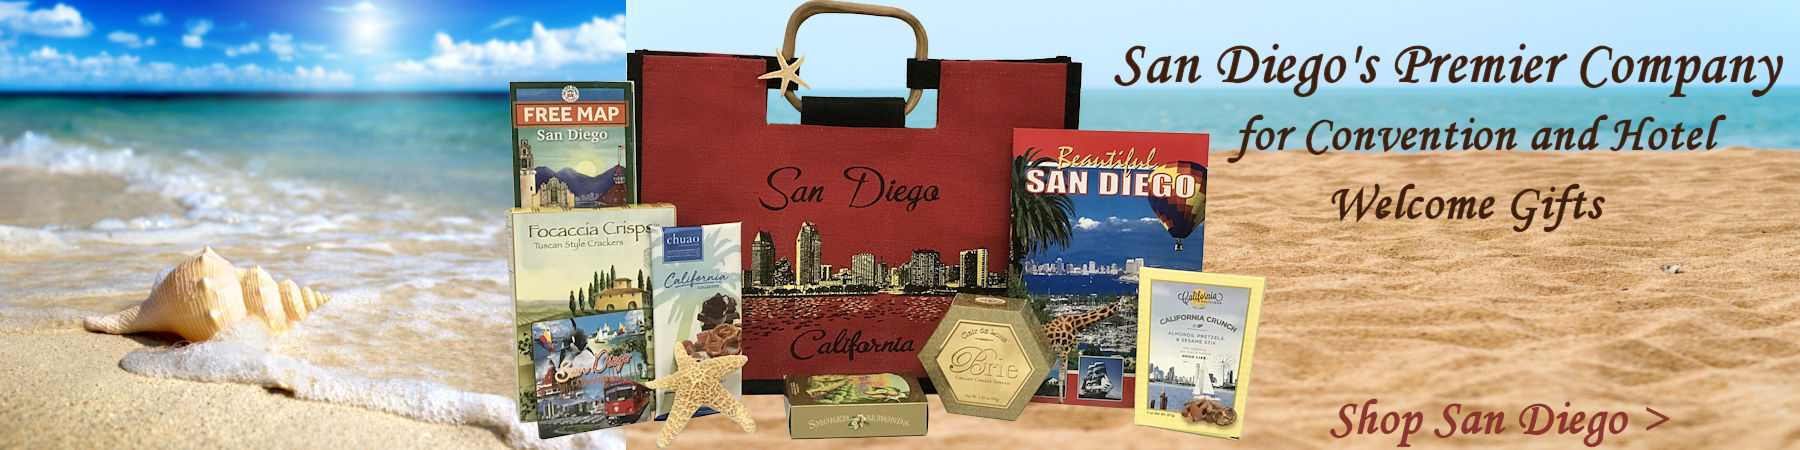 San Diego Hotel and Convention gifts